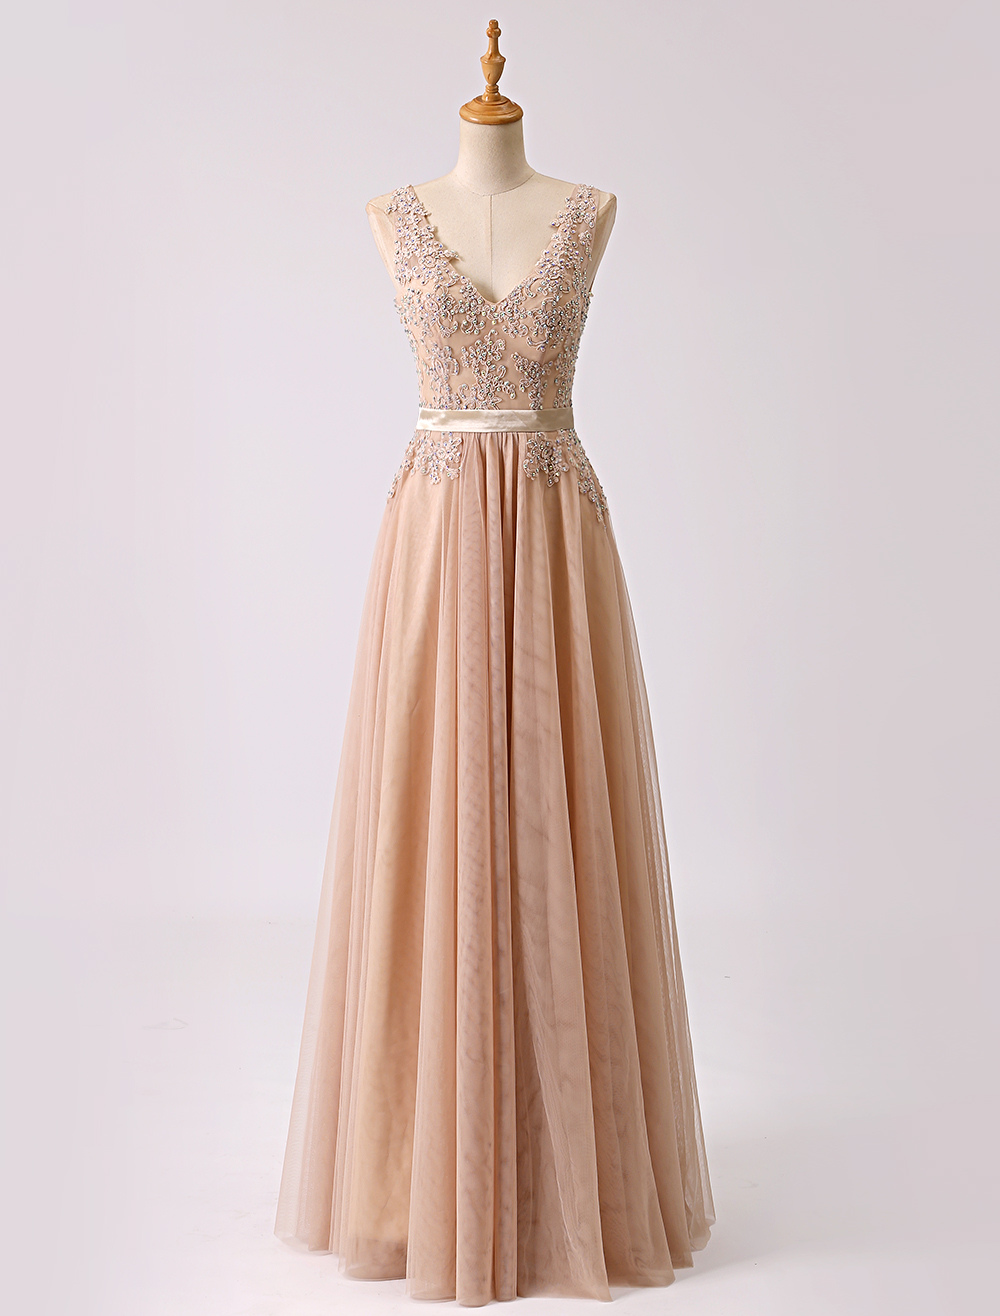 Long Deep V-neck Embroidered Beading Prom Dress With Sash Milanoo